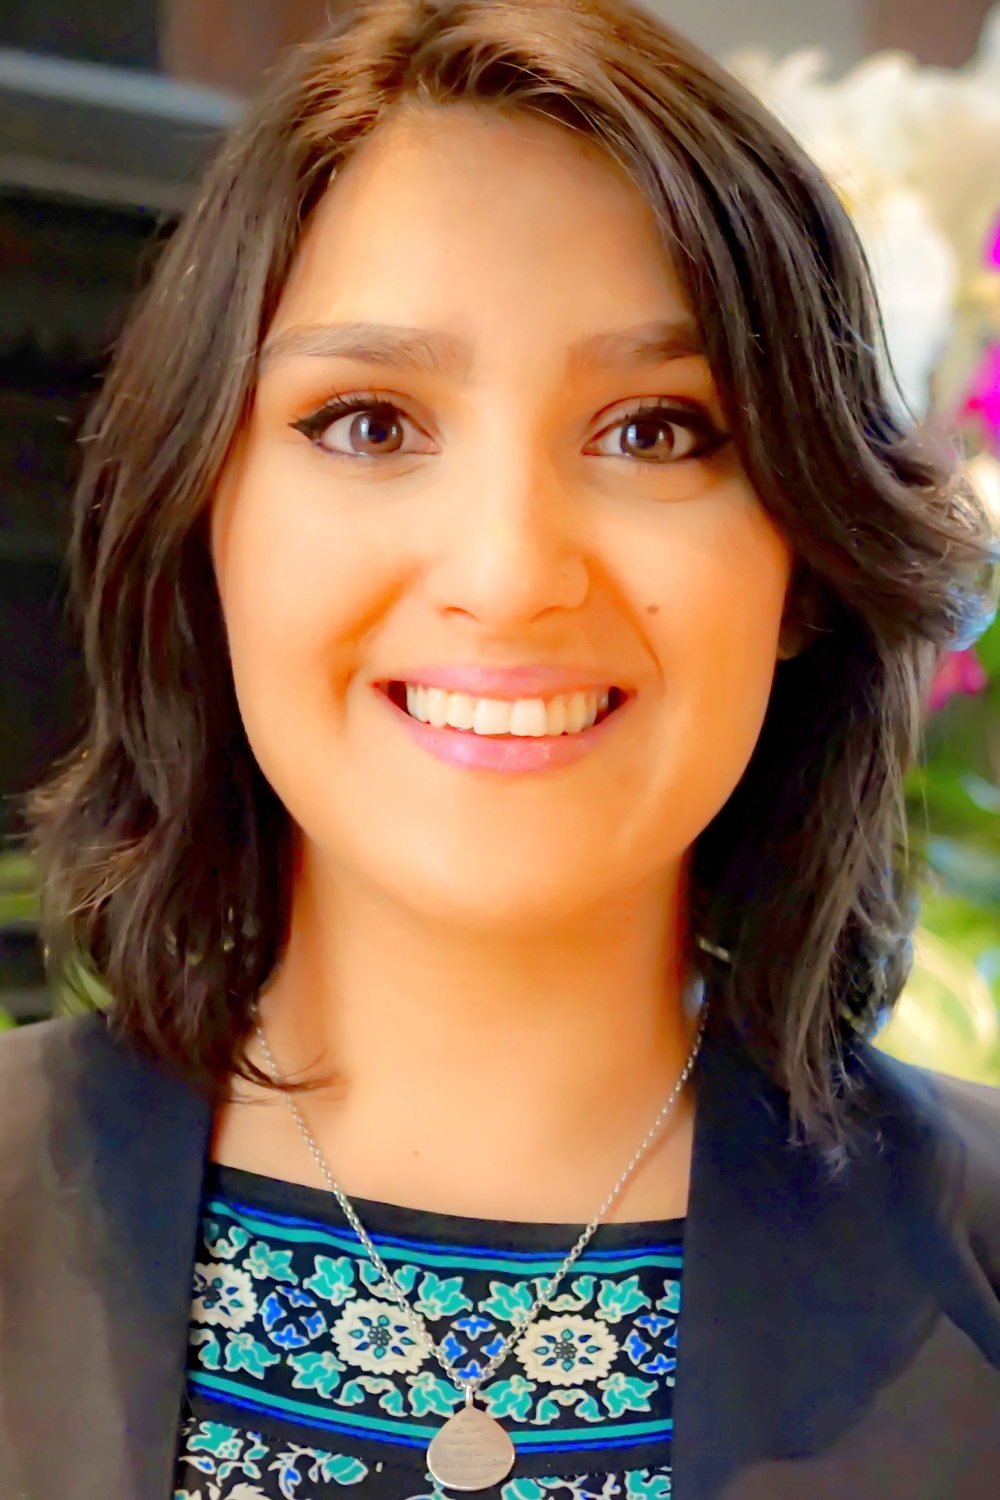 As a fully bilingual family law attorney in Houston, TX, Sobia Malik strives to make legal representation accessible to all residents of Houston and Galveston counties by providing services in both English and Spanish.